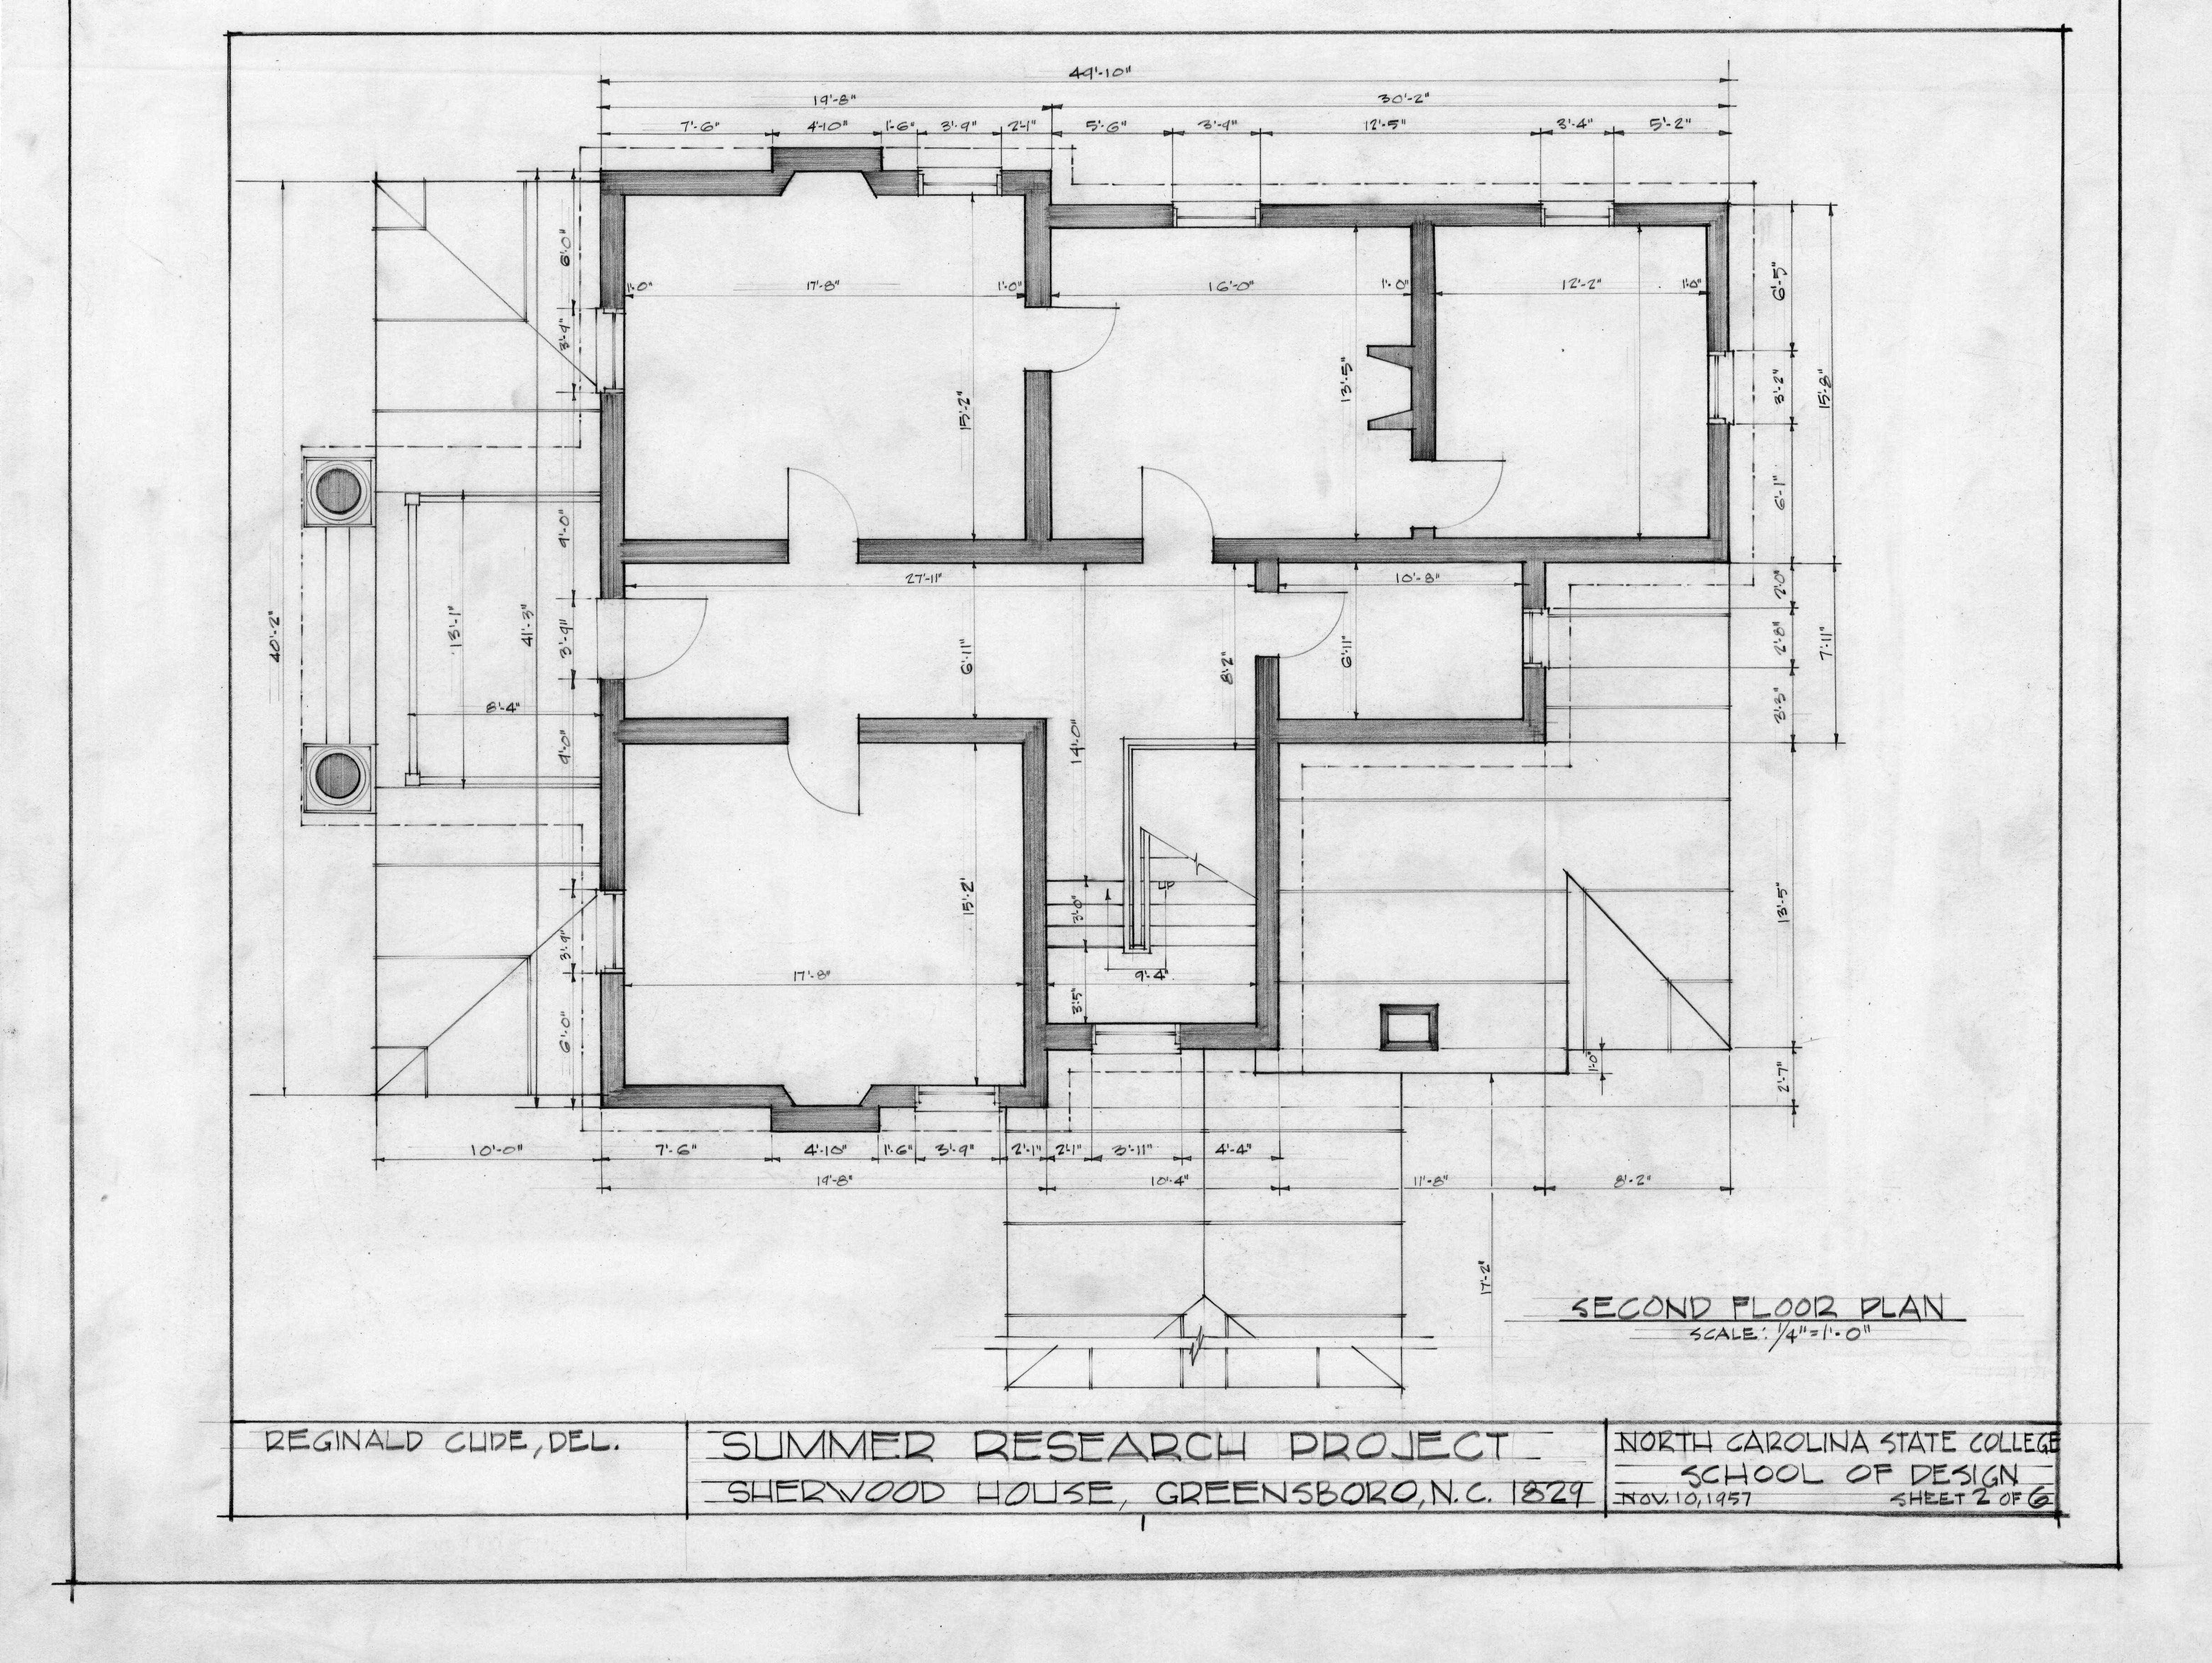 Second Floor Plan Sherwood House Greensboro North